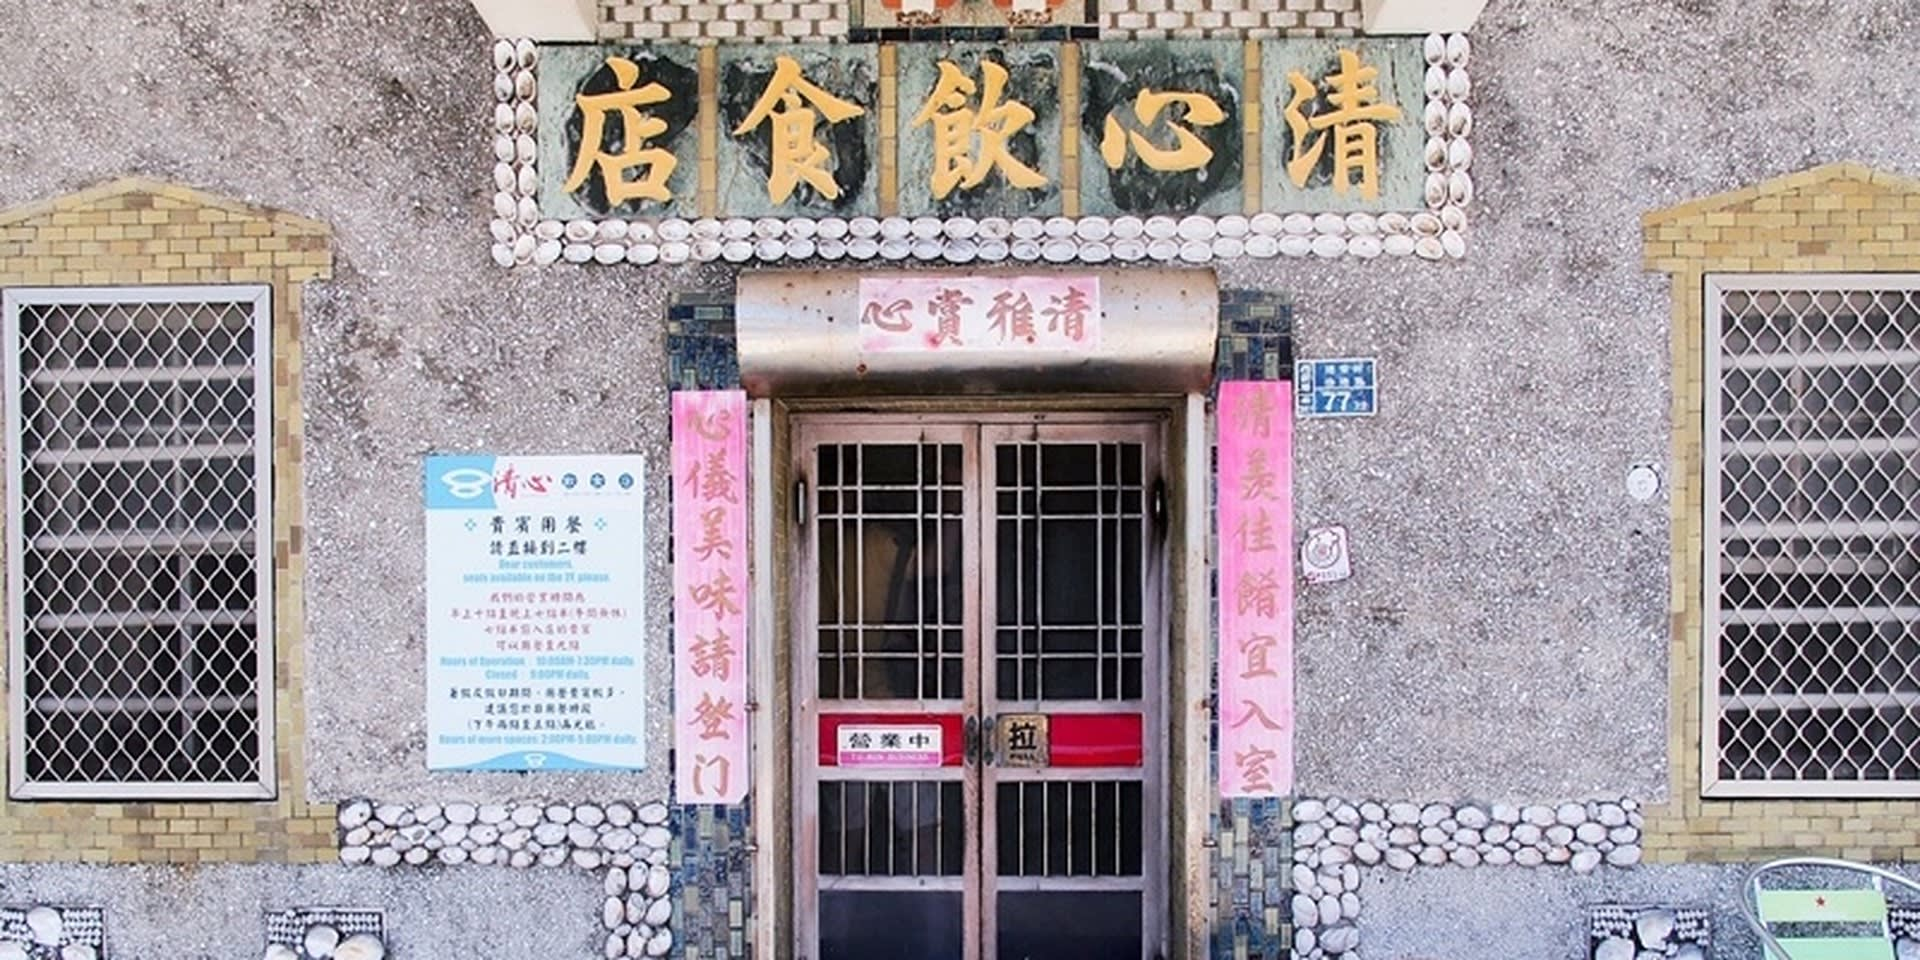 清心飲食店,圖片取自https://page.line.me/qor5251q/intro。